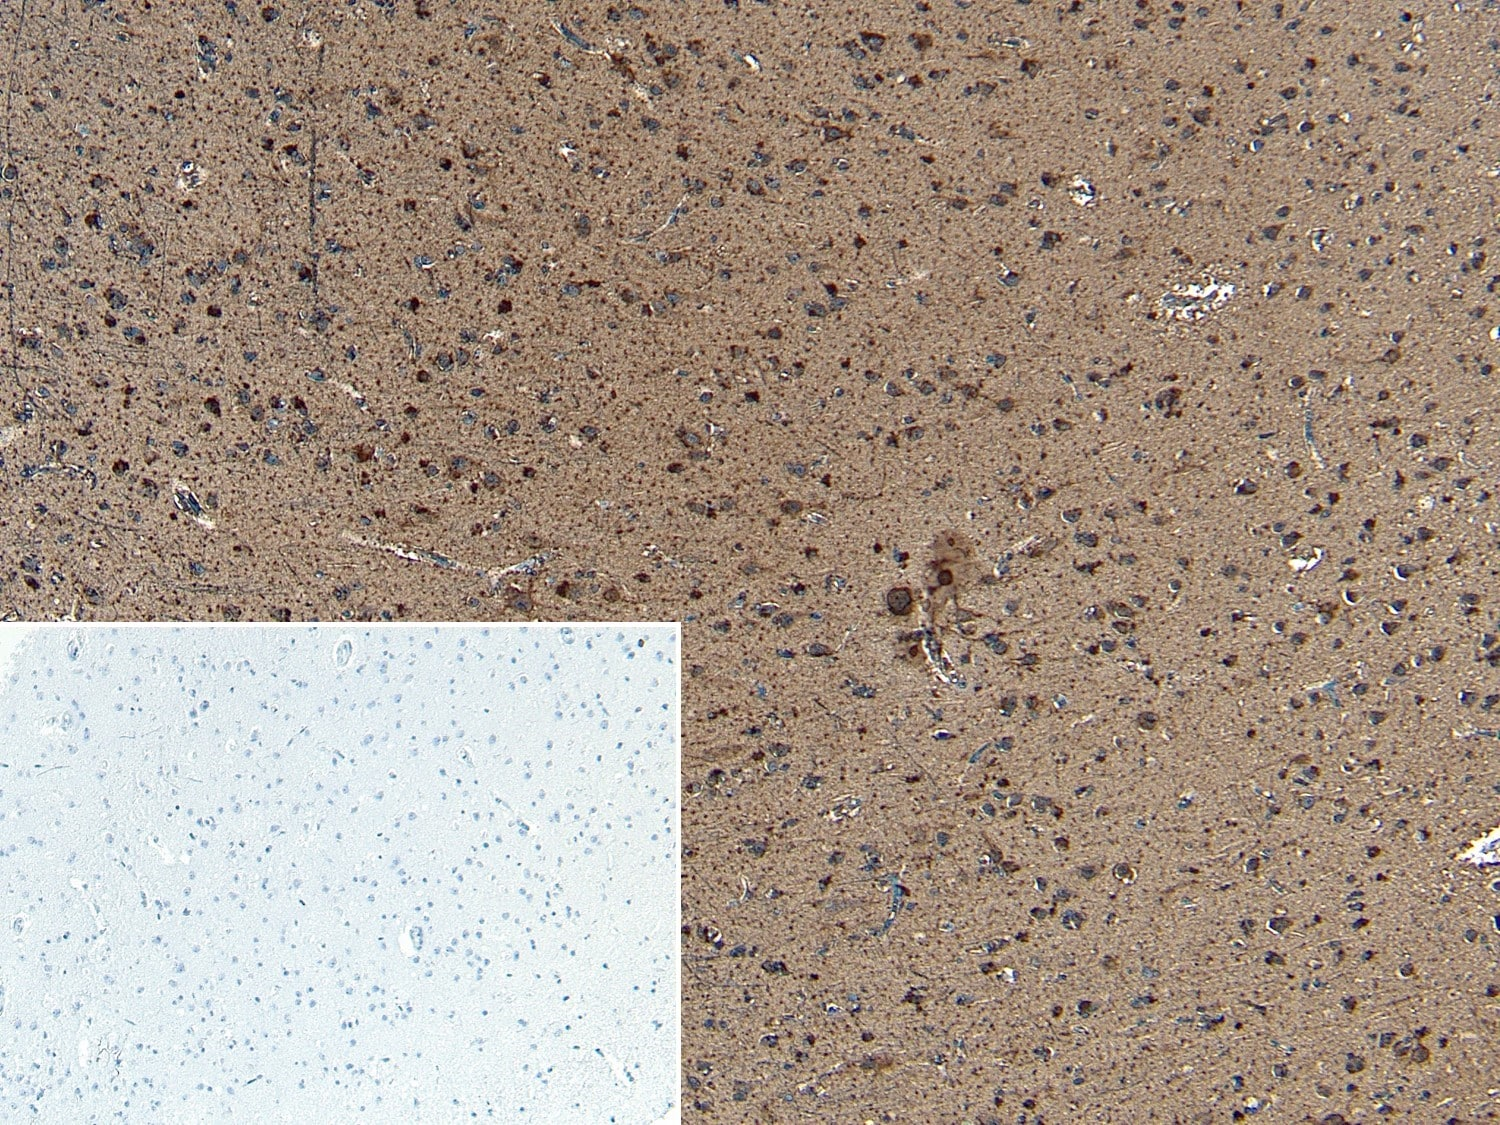 Immunohistochemistry (Formalin/PFA-fixed paraffin-embedded sections) - Anti-Nav1.5/SCN5A antibody (ab39992)